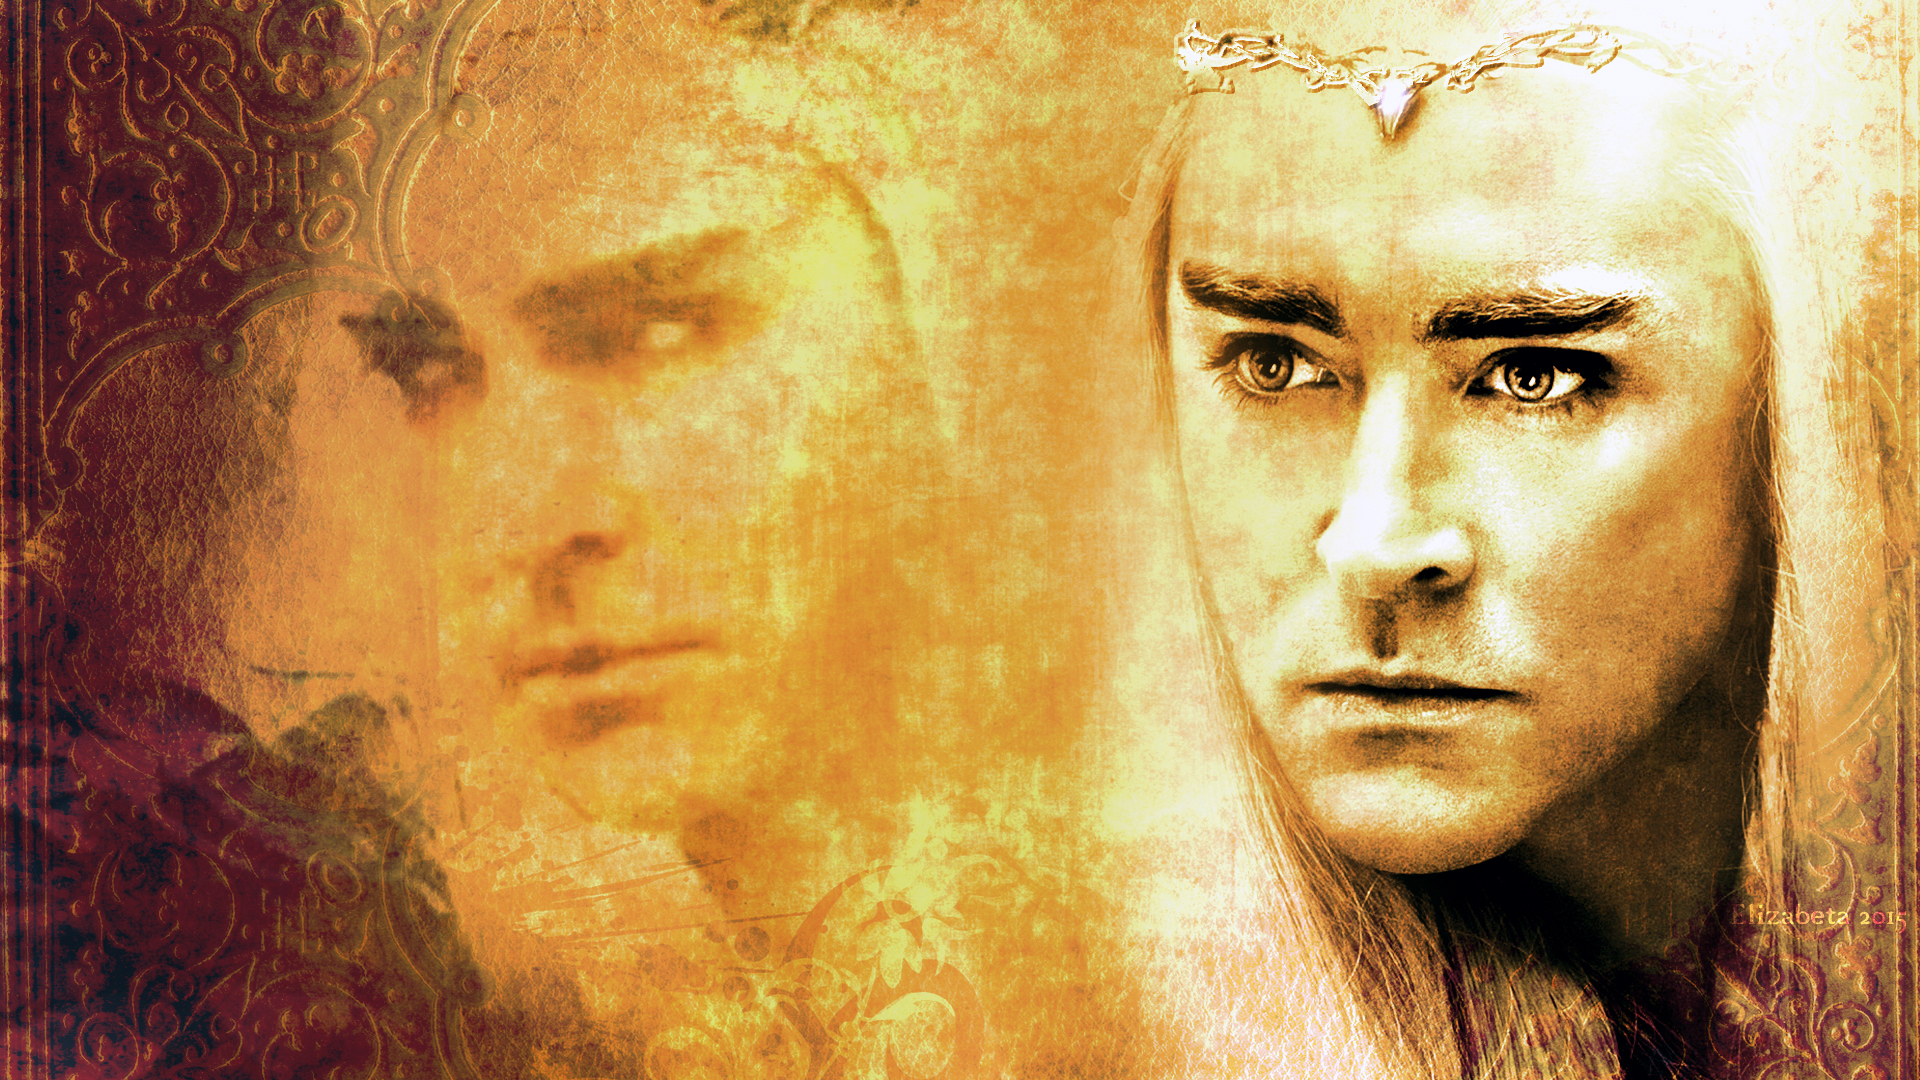 thranduil wallpaper by betka - photo #2